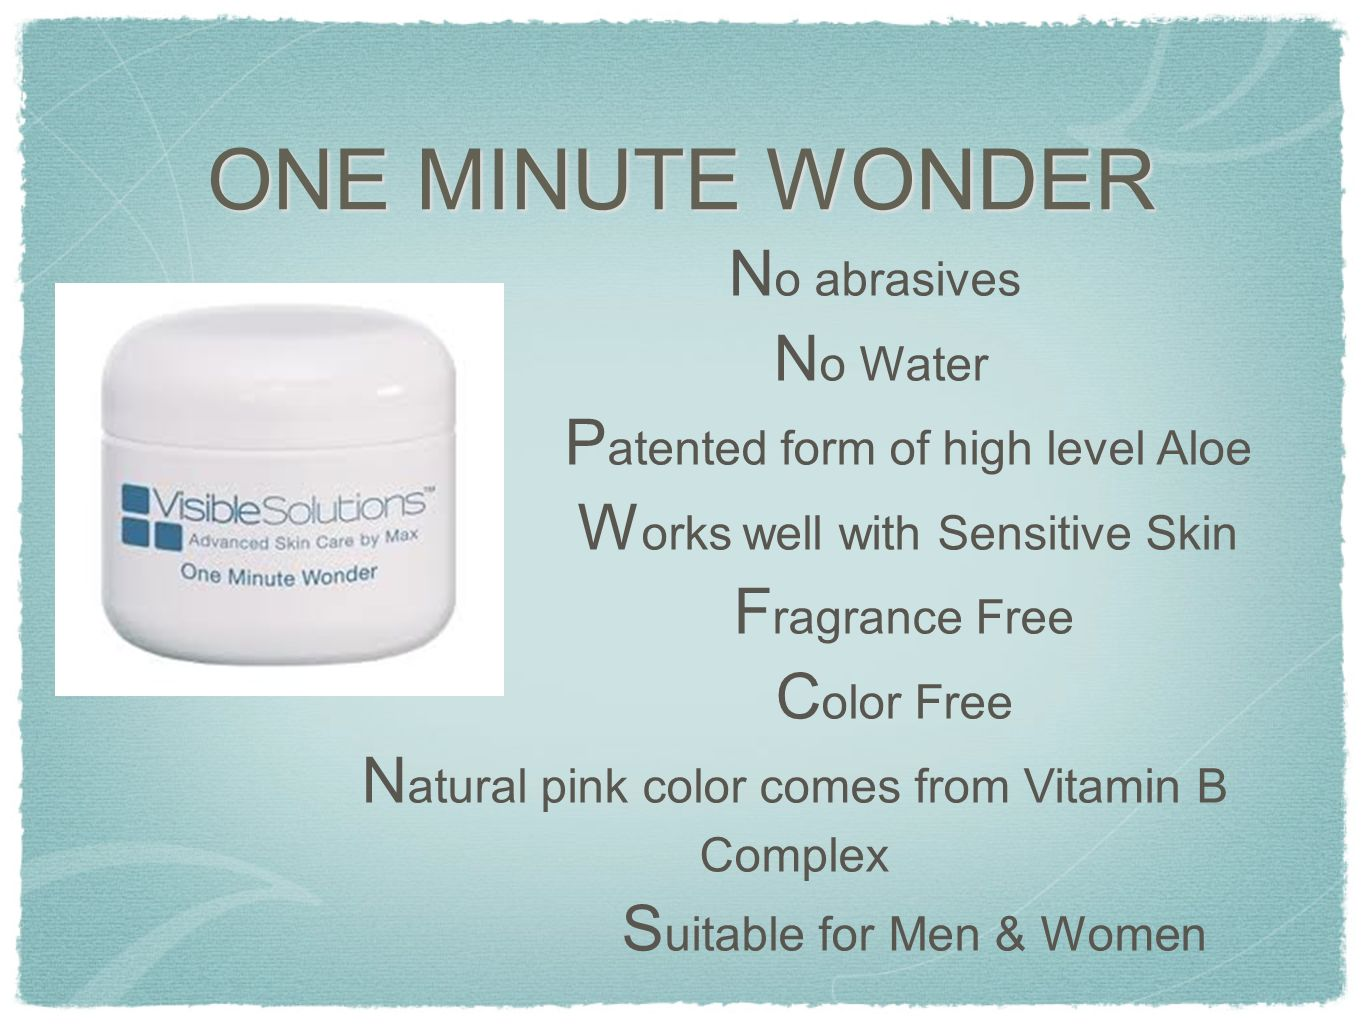 ONE MINUTE WONDER Natural pink color comes from Vitamin B Complex